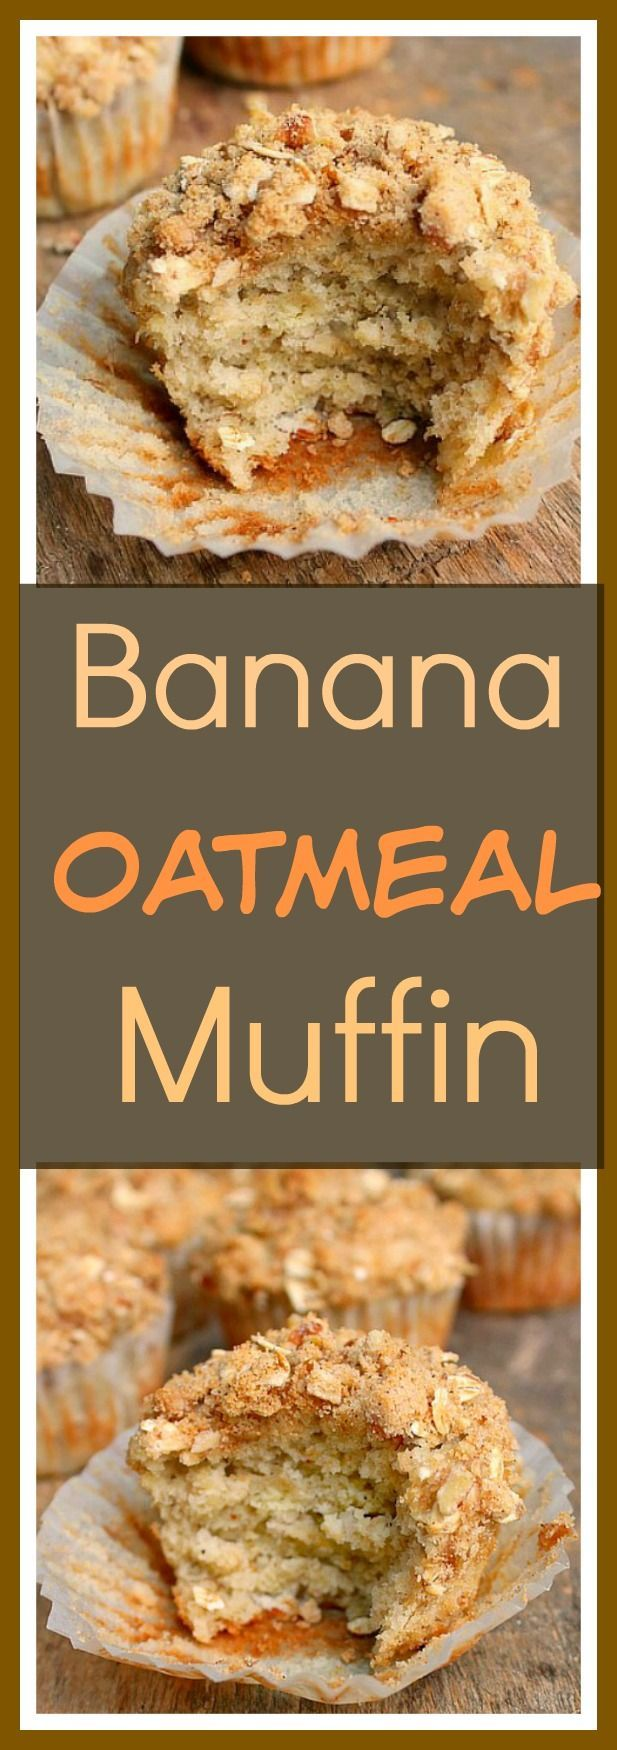 Banana Oatmeal Muffin with Pecan Brown Sugar Topping....the best banana muffin I've ever made!